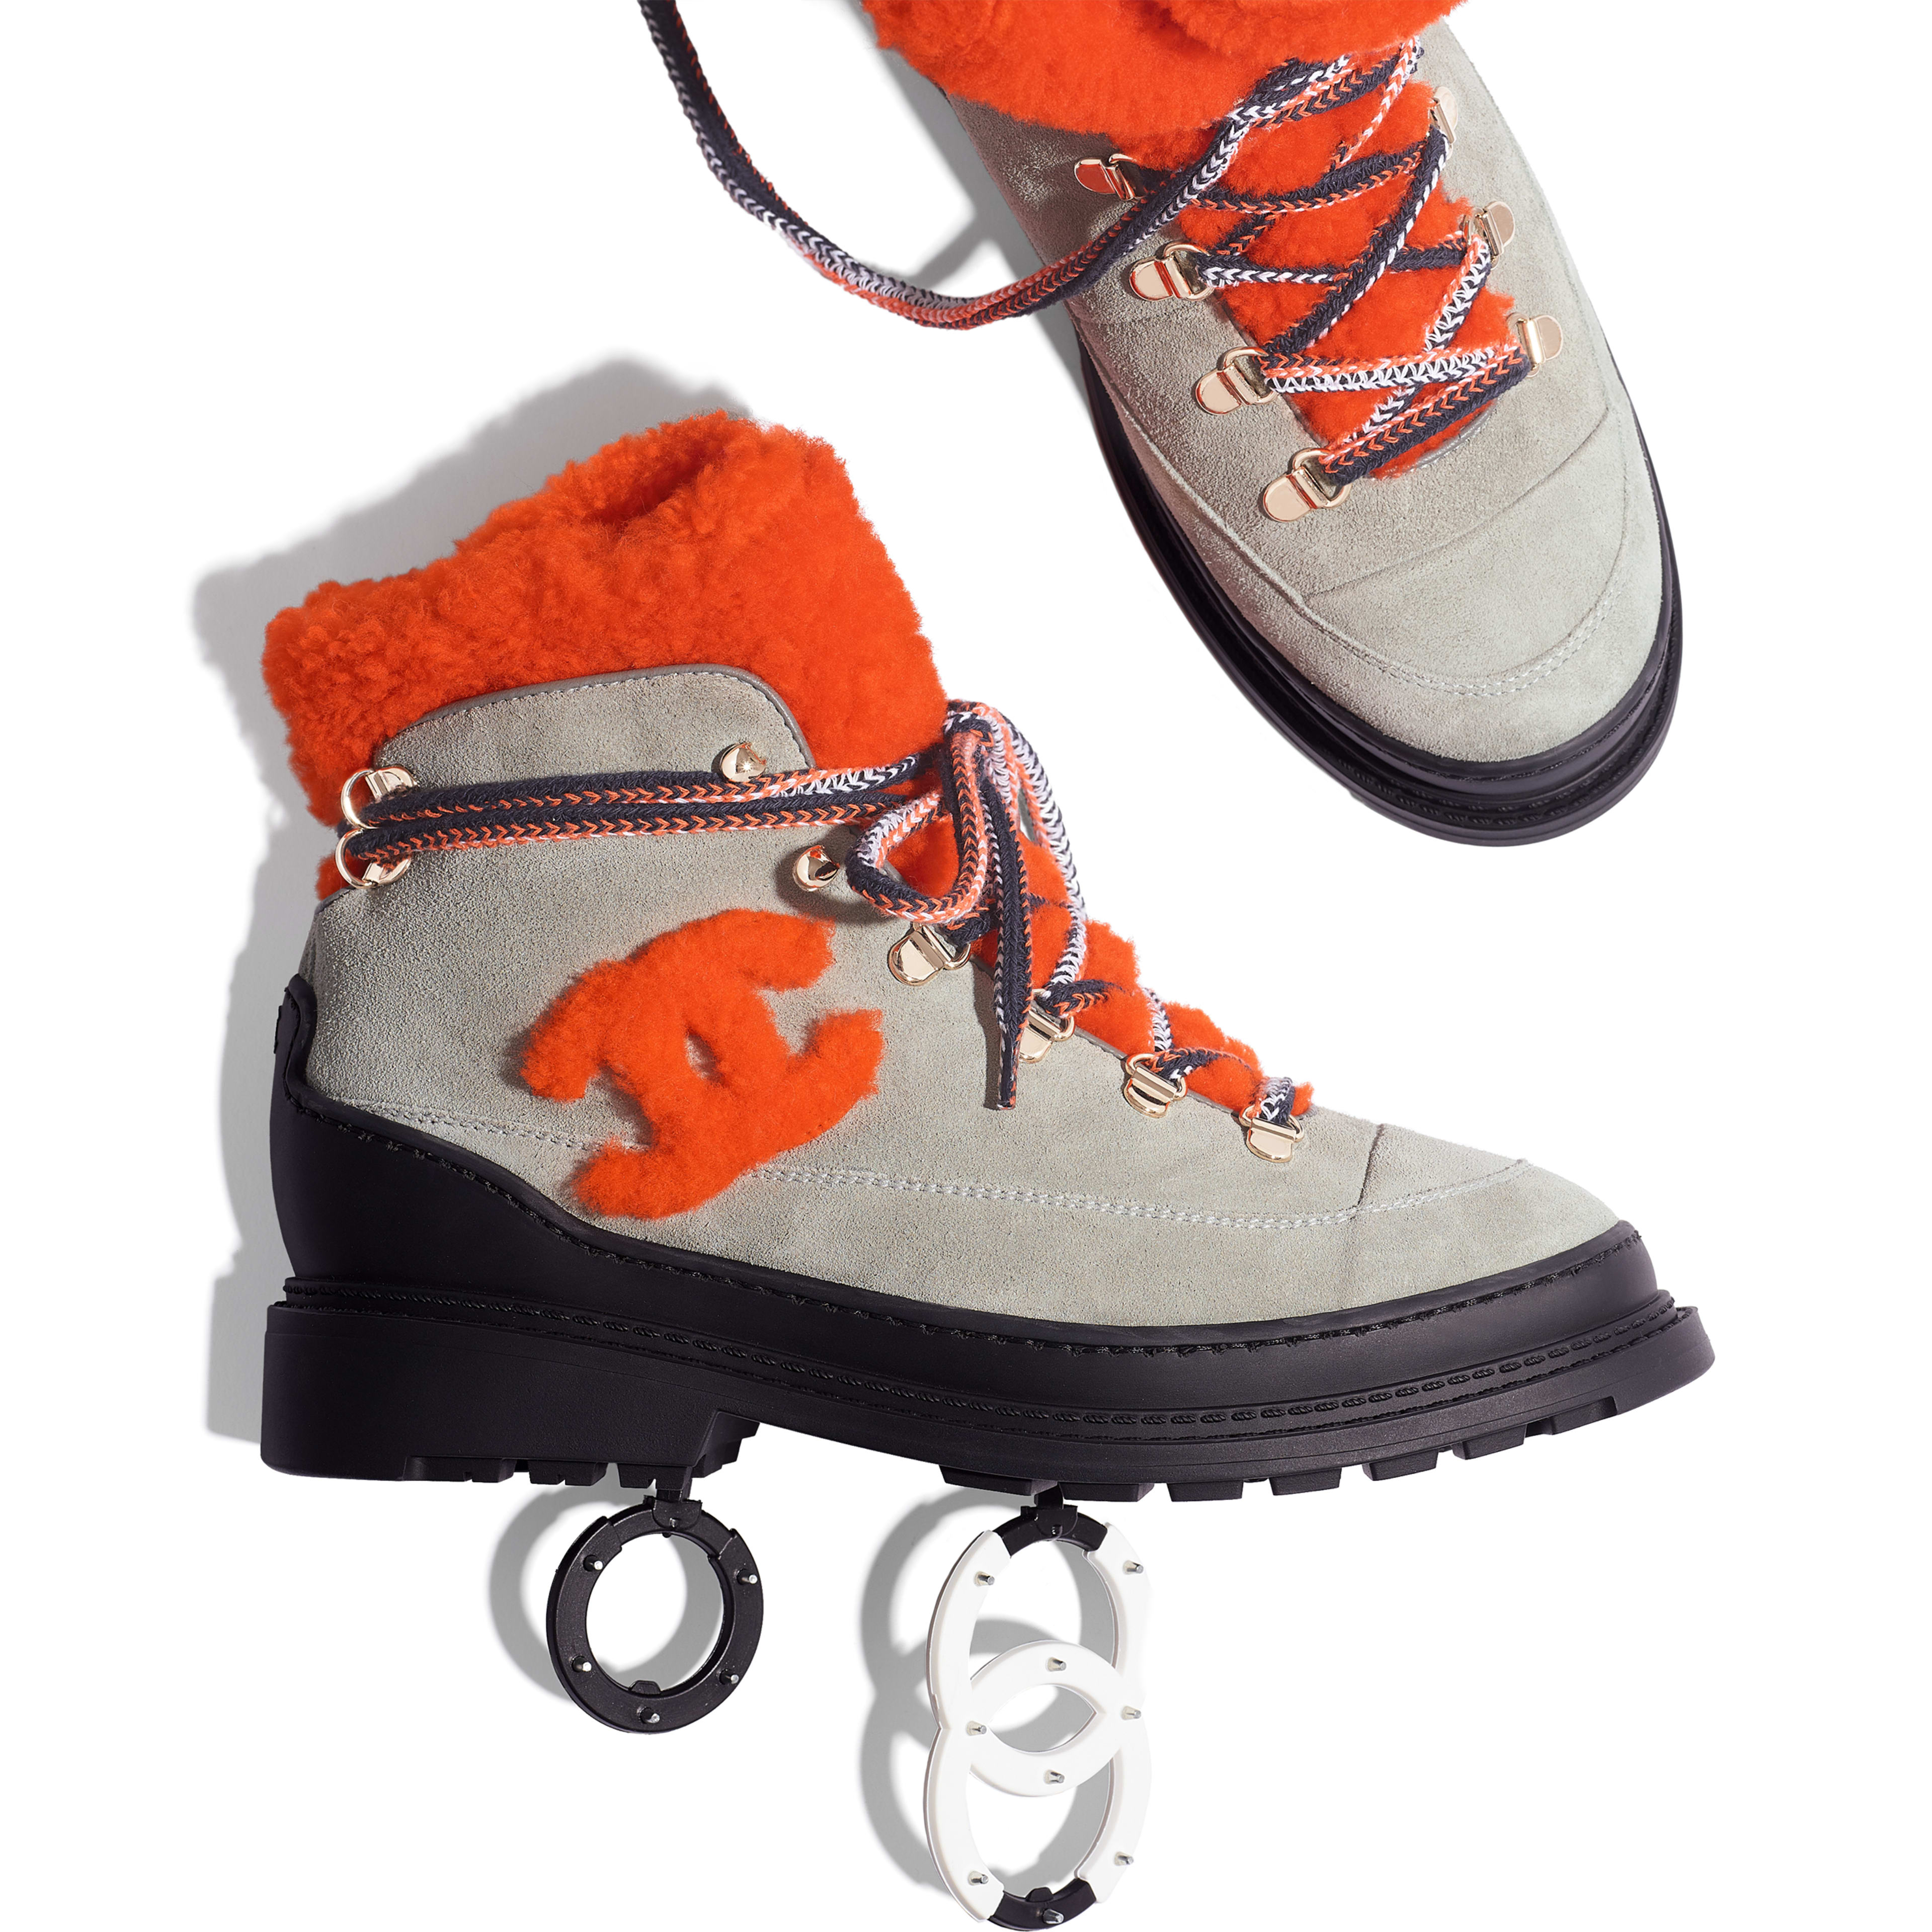 Lace-Ups - Gray & Orange - Suede Calfskin & Shearling - Extra view - see full sized version